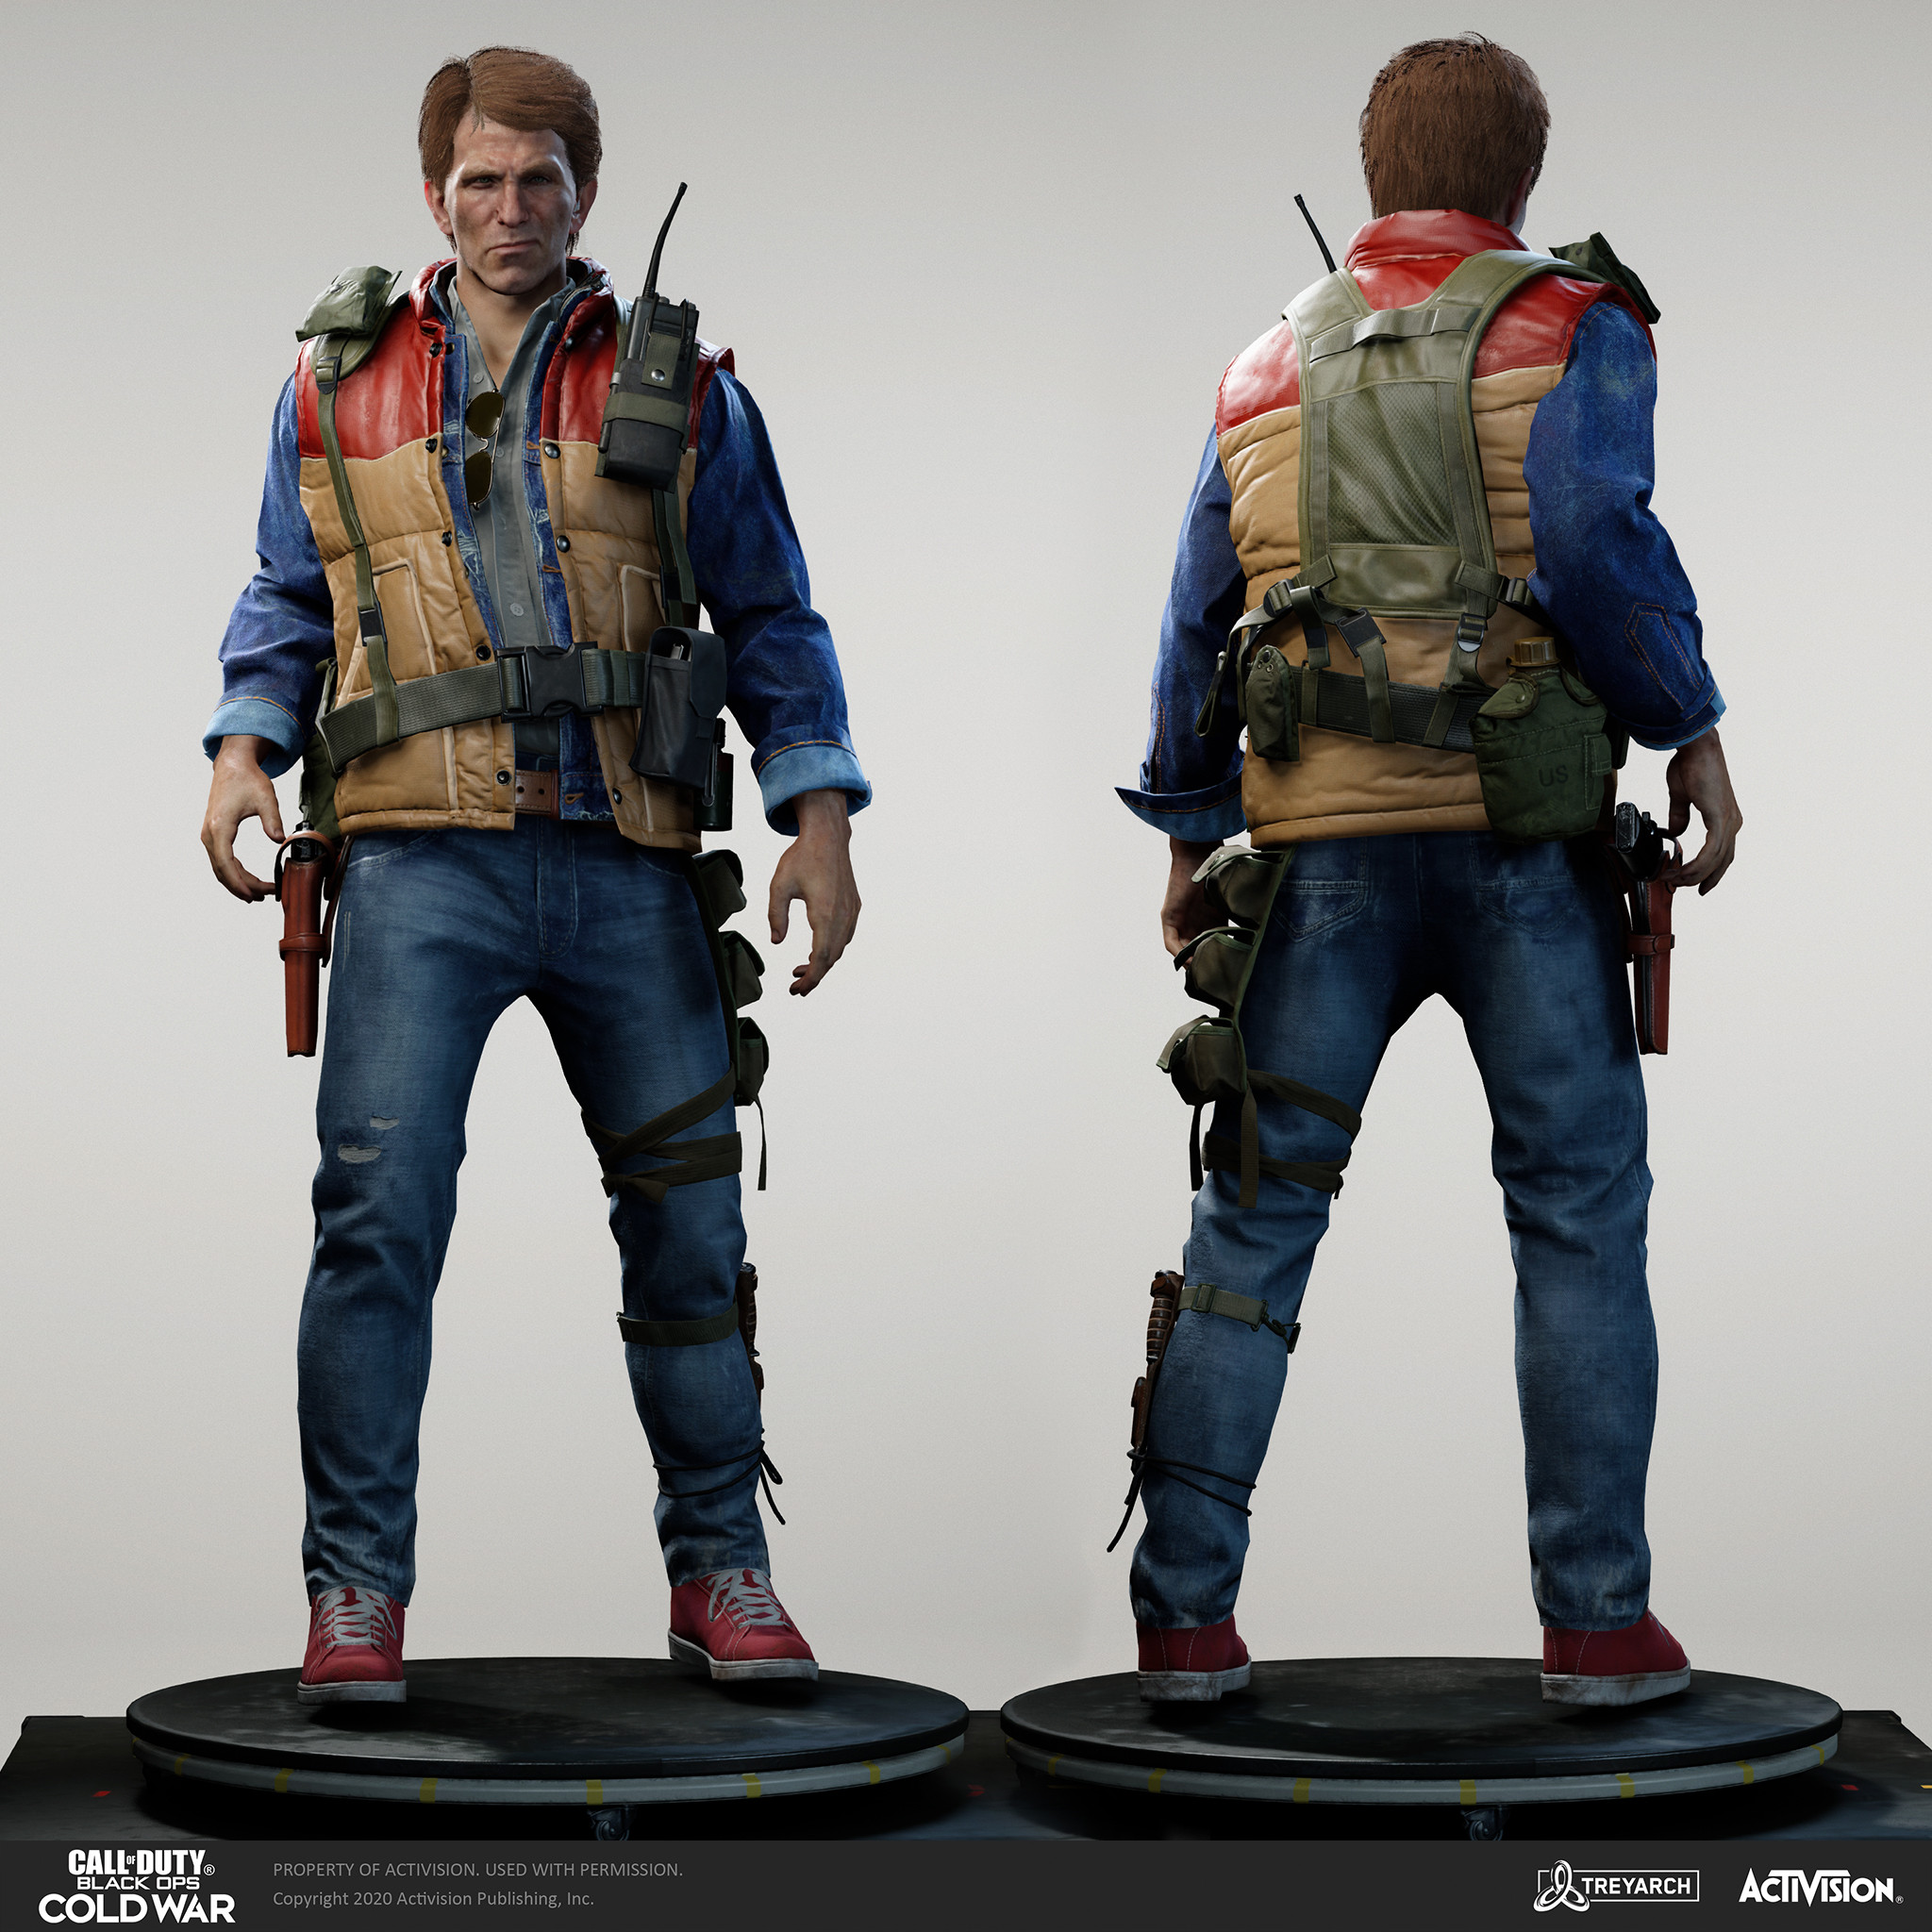 John Baker operator - Brushfire. I was responsible for the design, game mesh assembly, and textures/materials. Individual models/bakes used on the character were created by the Treyarch, SHG, Raven, and OS teams. Head and hair model by Wren Cromwell.